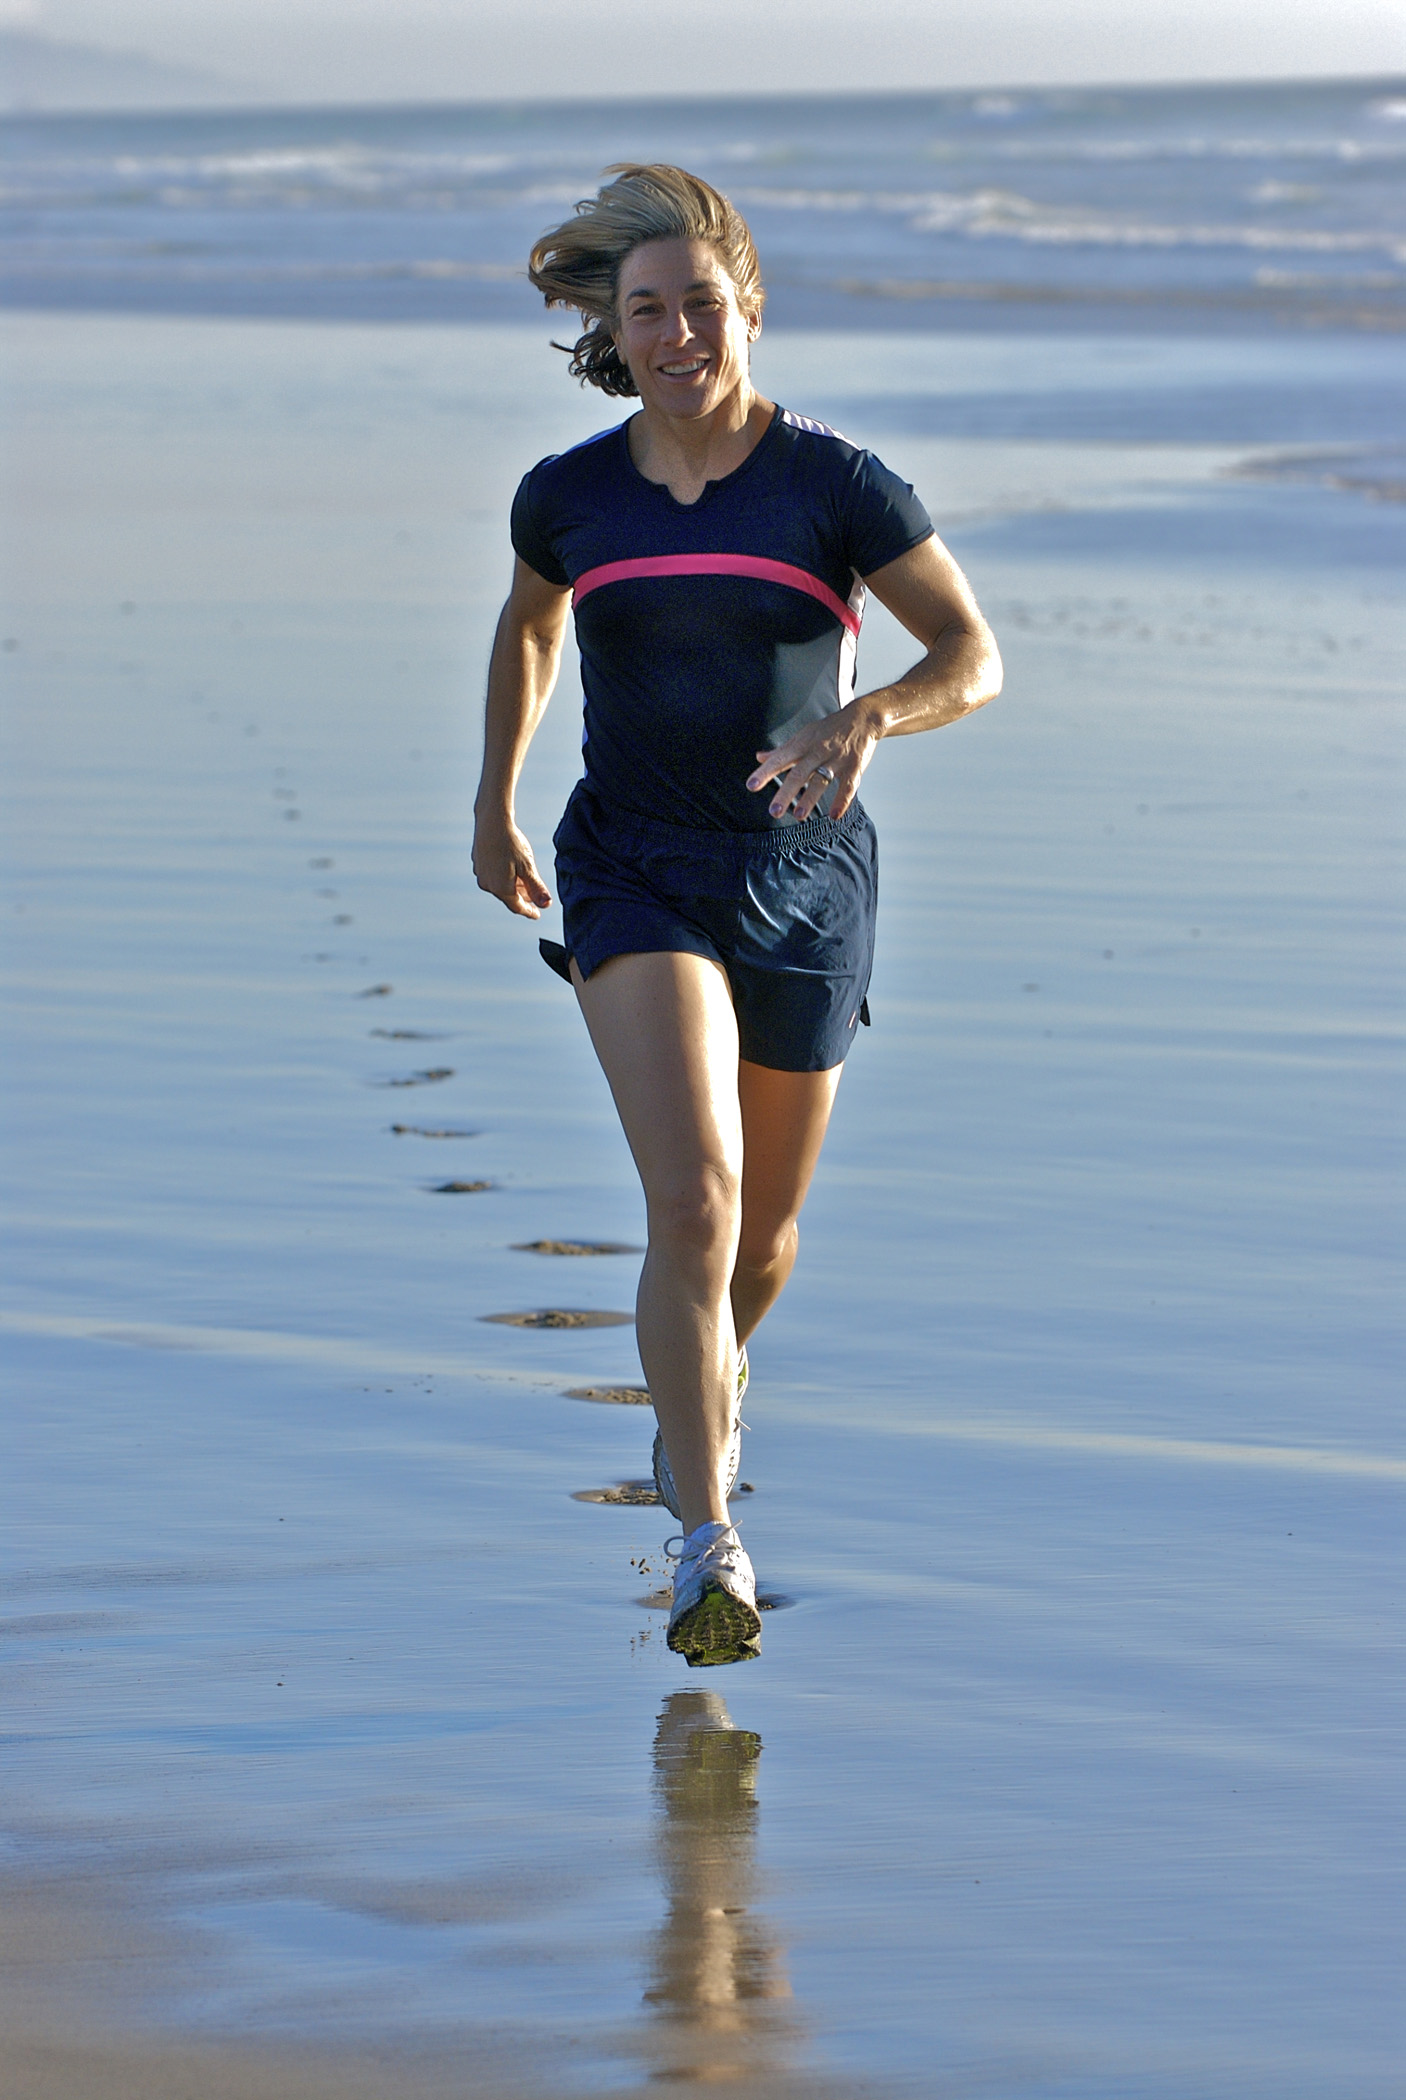 Running on the beach!